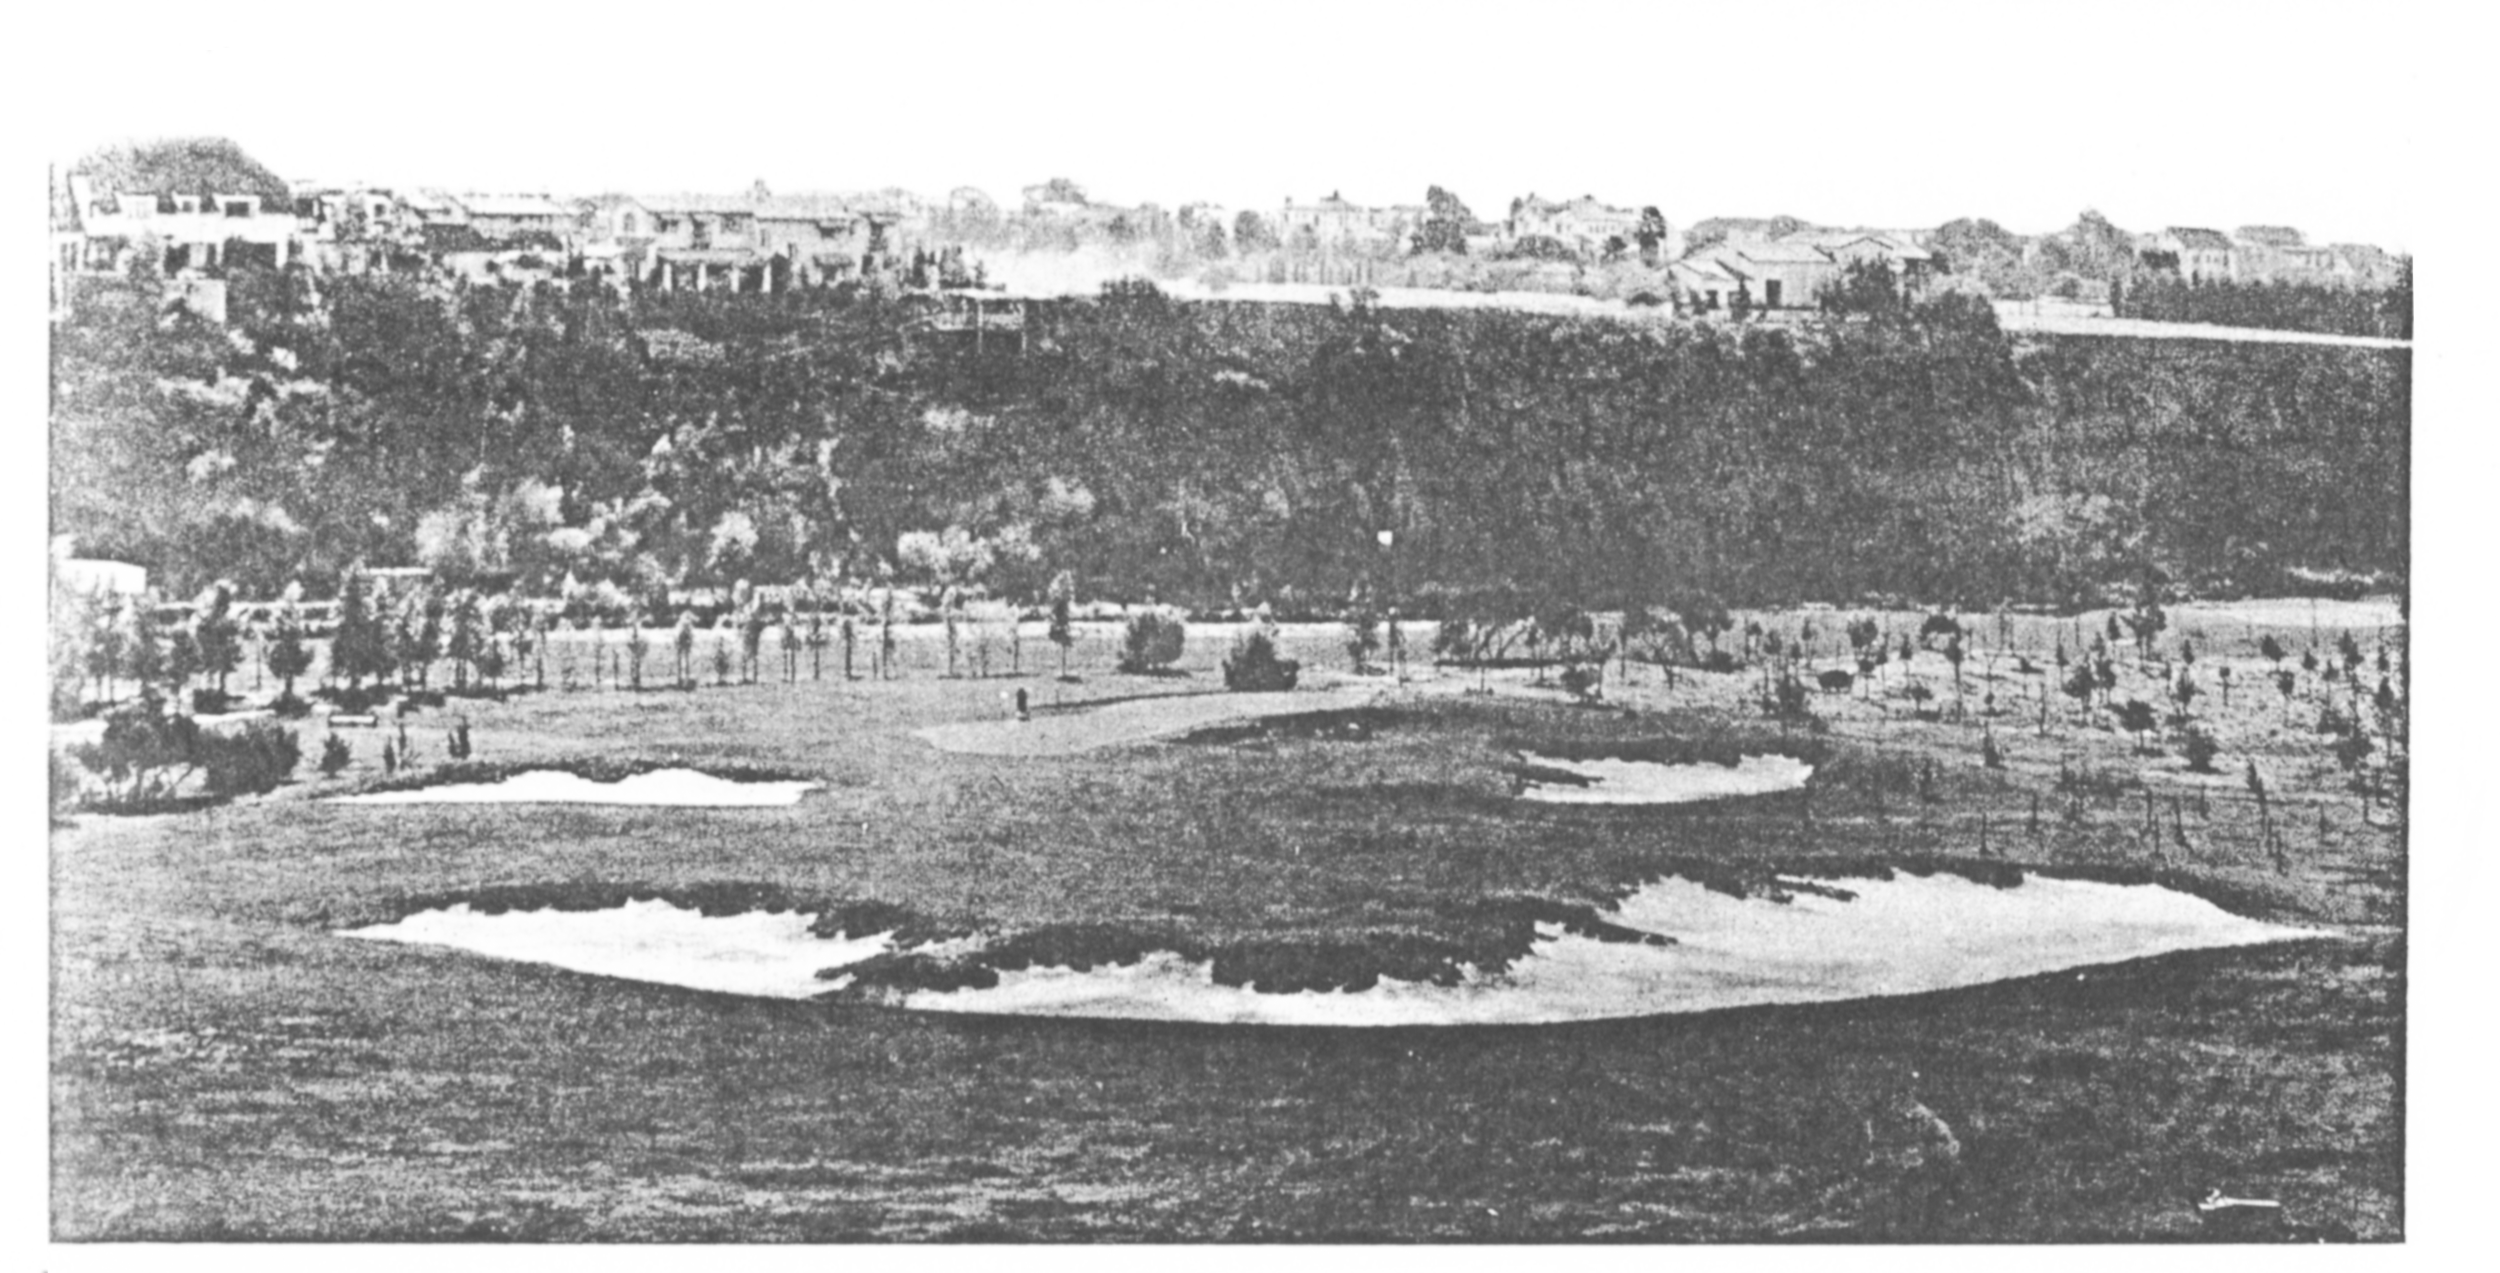 """The 10th hole as bunkers are added around the green in 1928. The left """"lay-up"""" bunker had also been recently installed. The two foreground bunkers and far right bunker were part of the original design."""